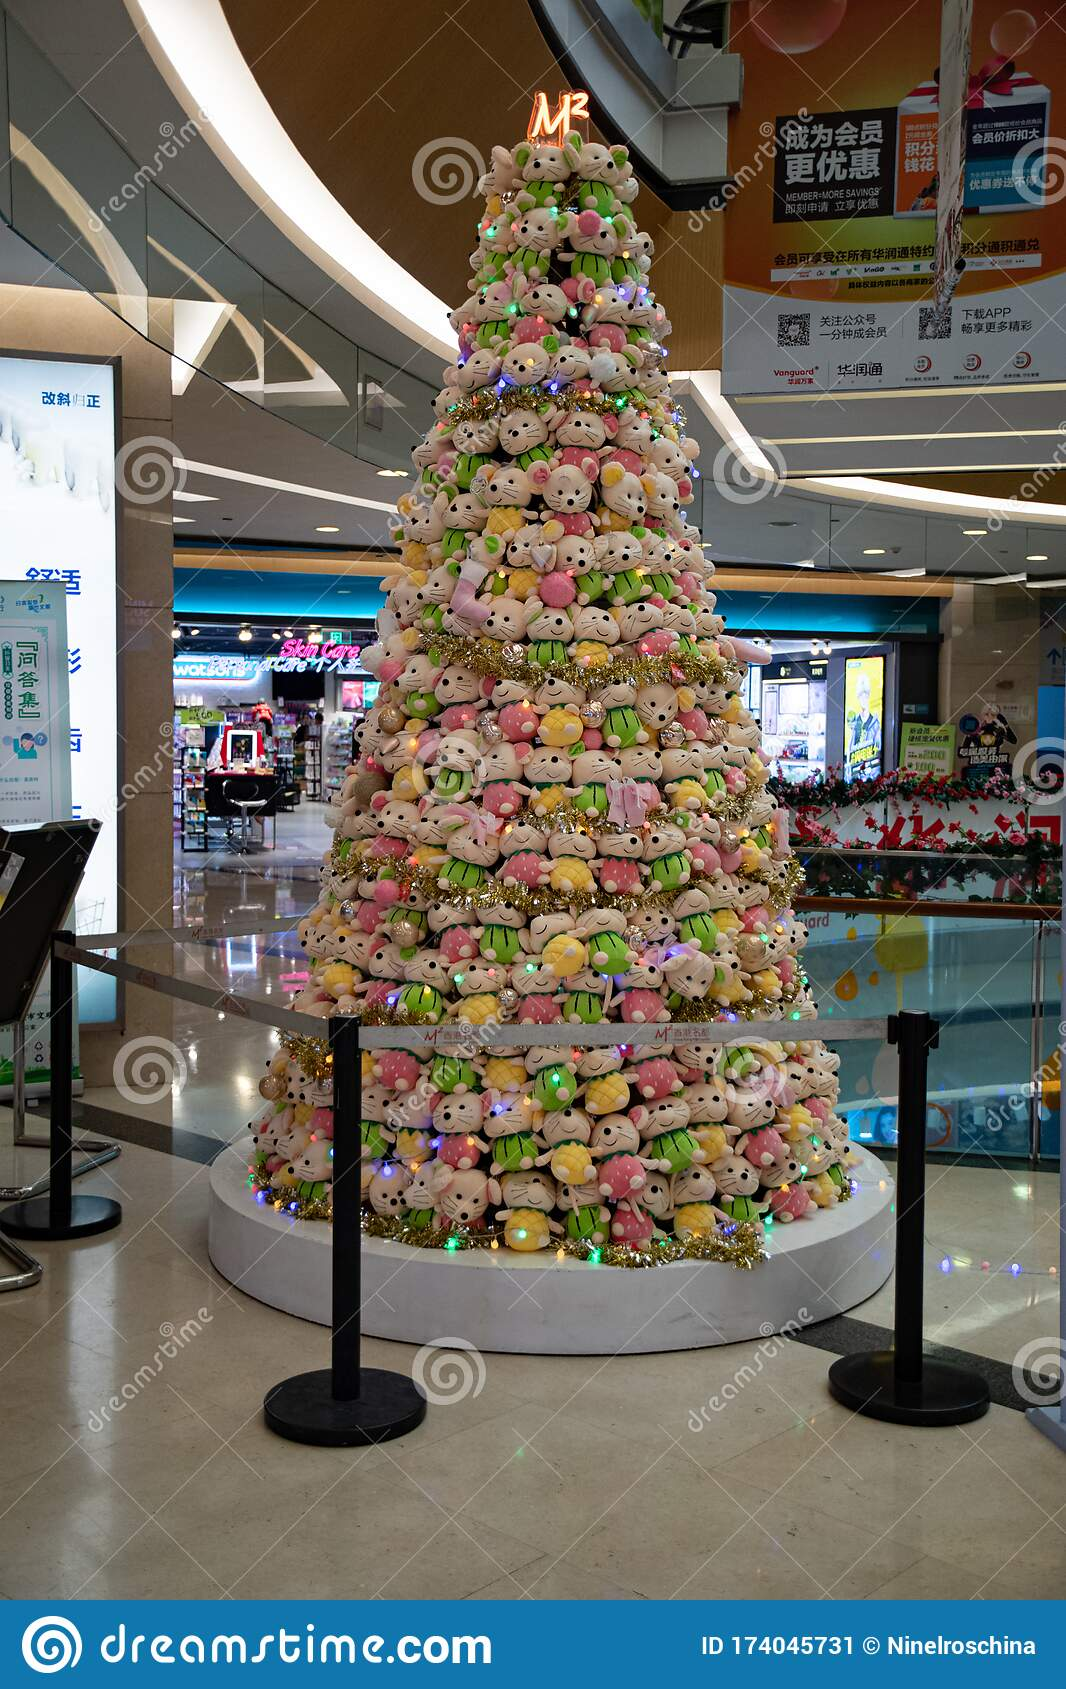 Chinese Christmas Tree Made From Many Colorful Stuffed Toys In Shape Of Small Cute Mouse Lunar New Year Decorations In Shop Editorial Photo Image Of Oriental Garland 174045731